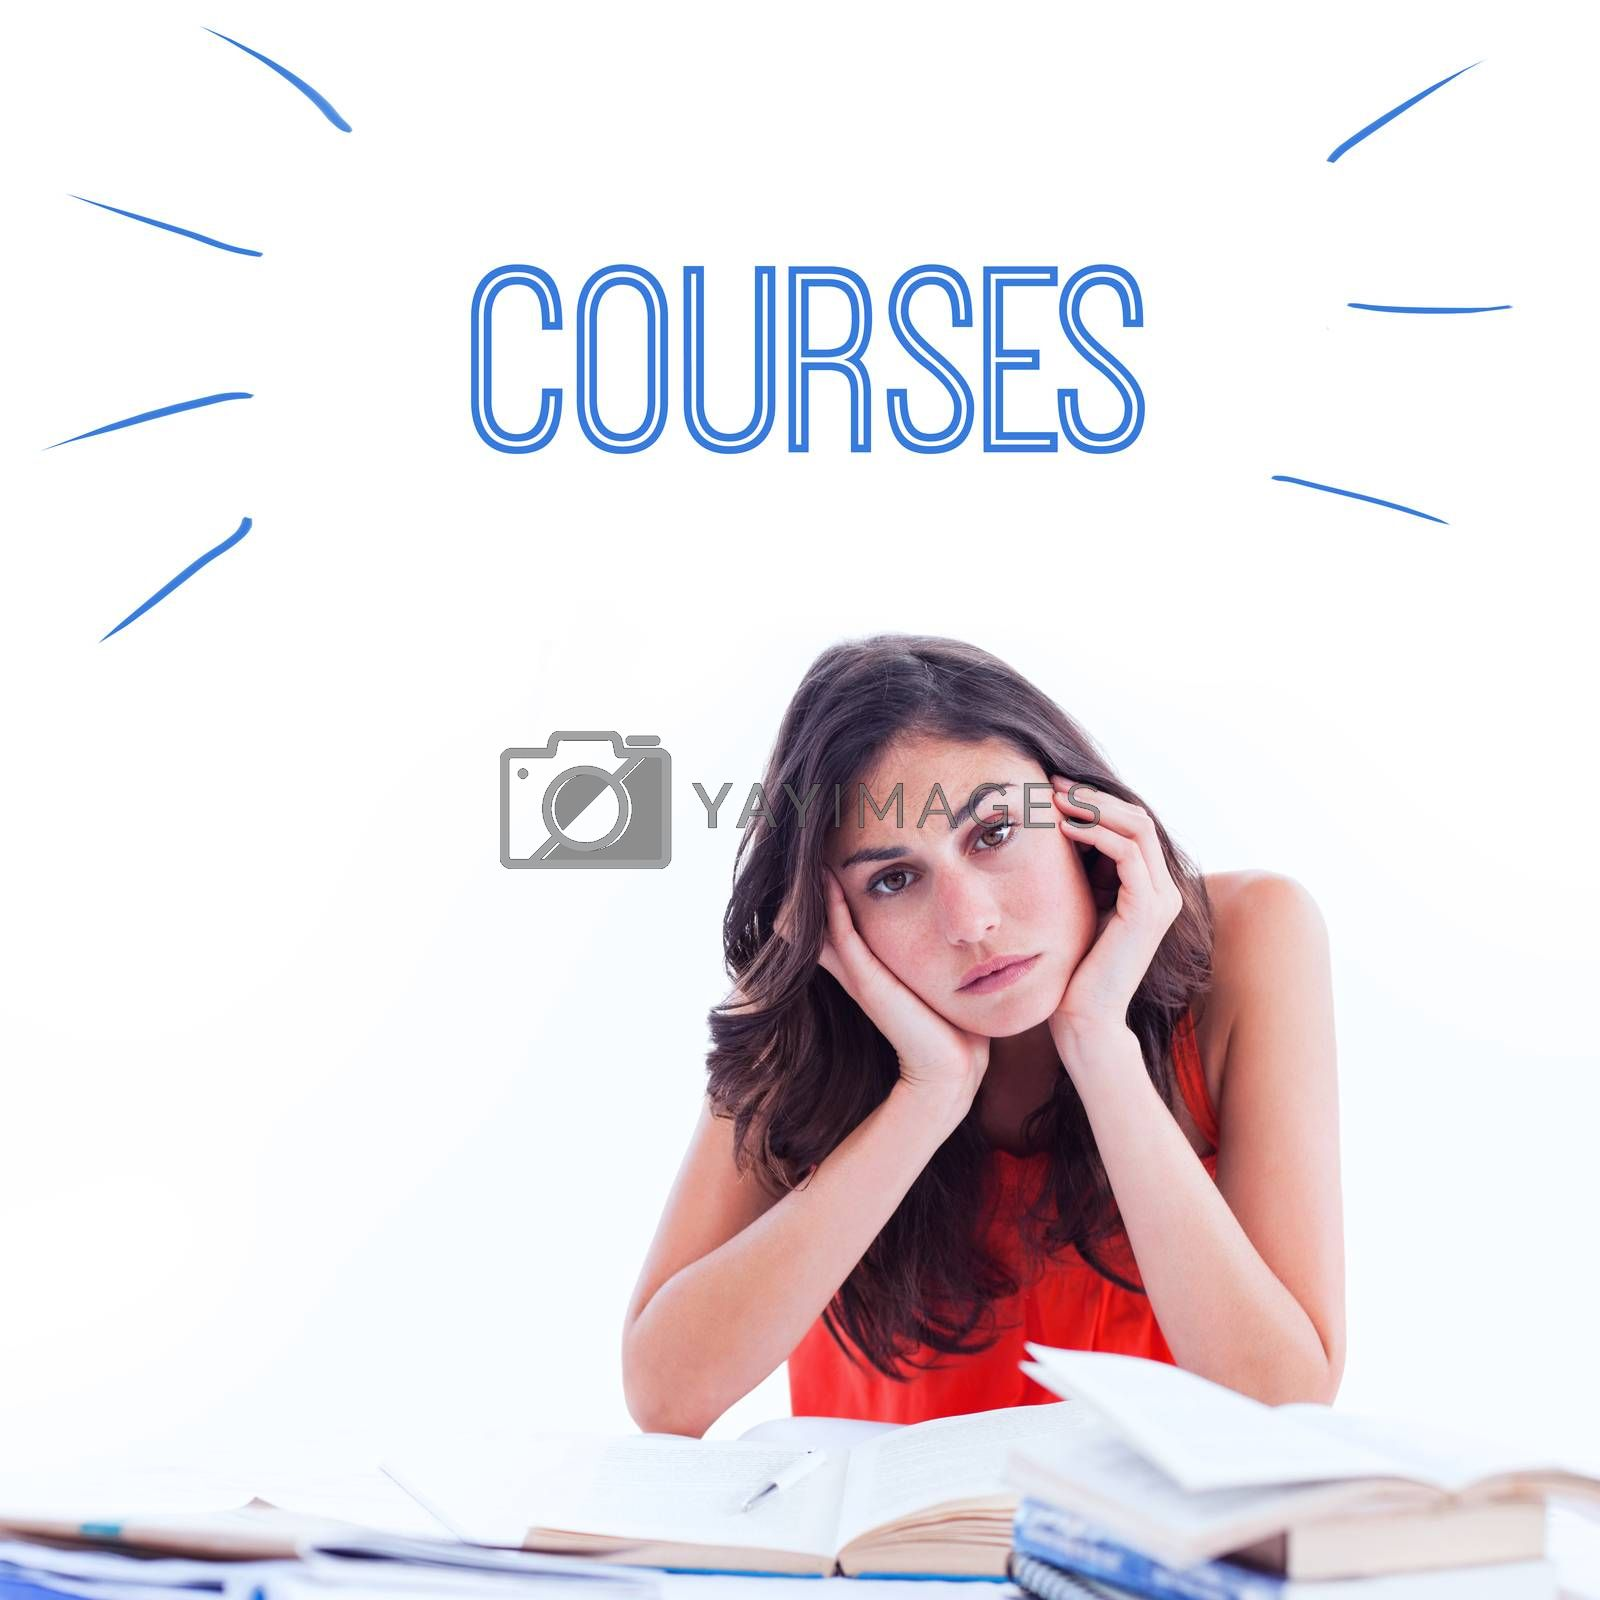 The word courses against stressed student at desk